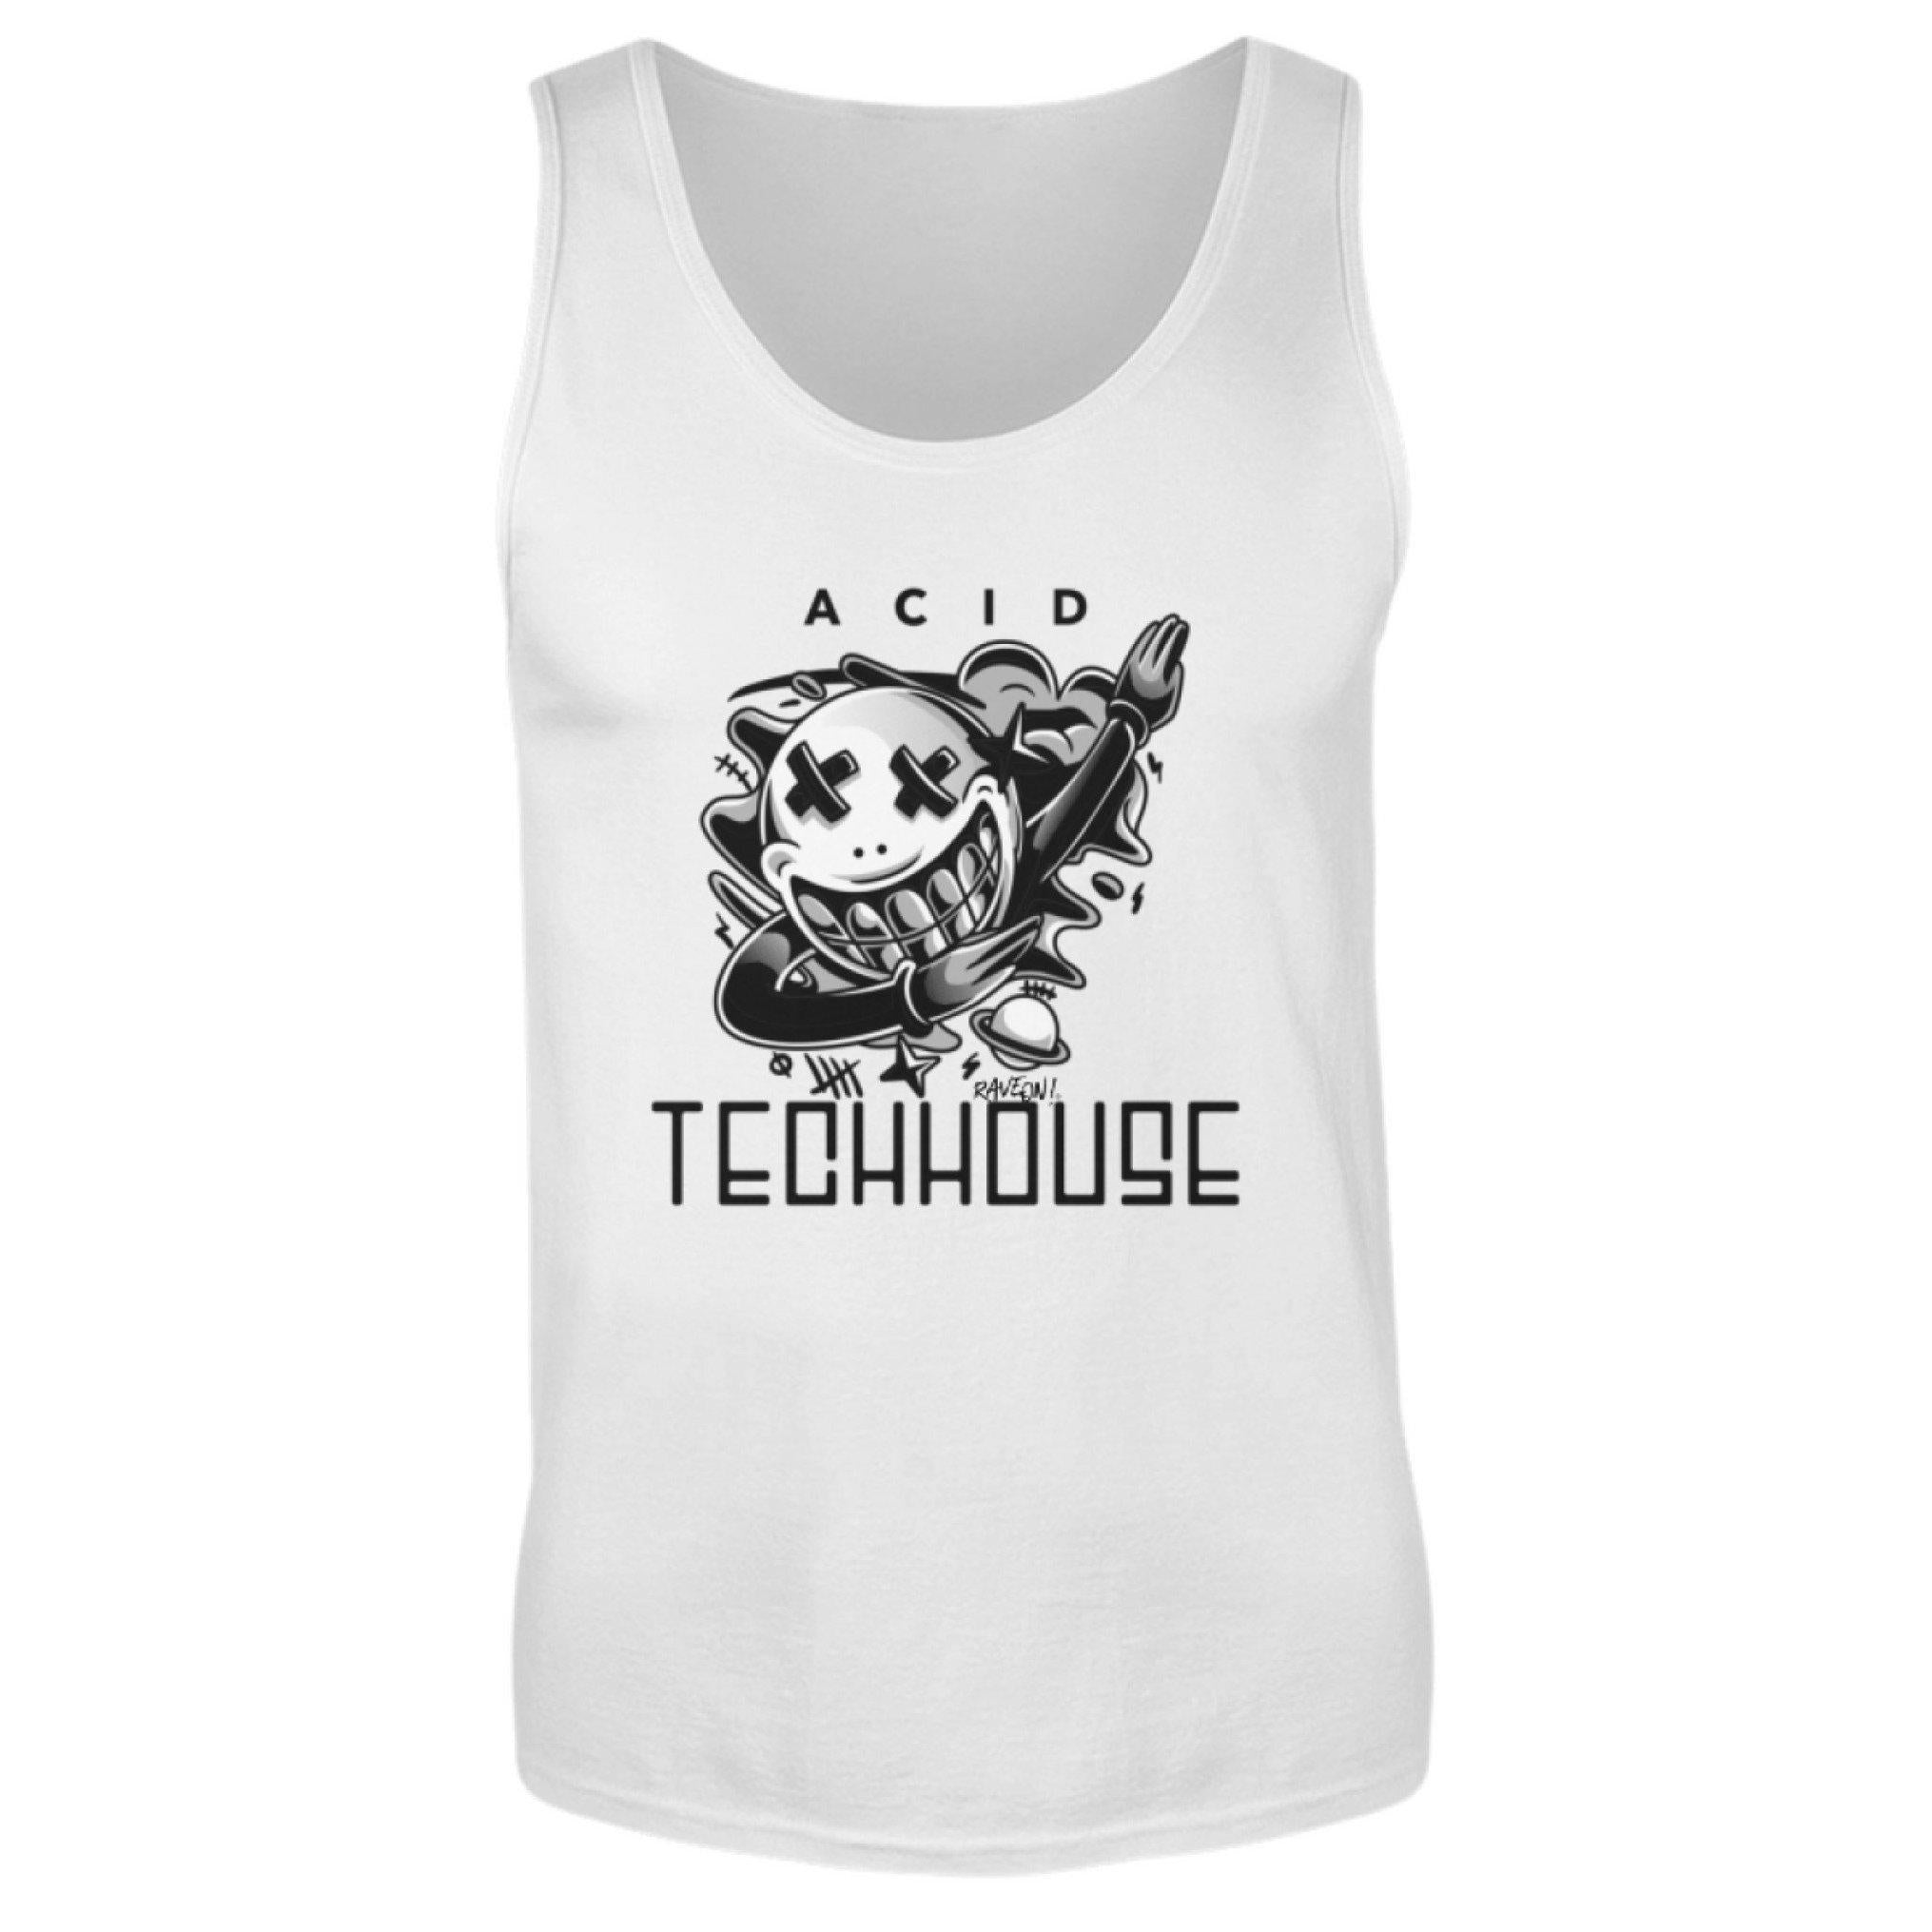 ACID TECHHOUSE - Rave On!® - Herren Tanktop Herren Tank-Top White / S - Rave On!® der Club & Techno Szene Shop für Coole Junge Mode Streetwear Style & Fashion Outfits + Sexy Festival 420 Stuff